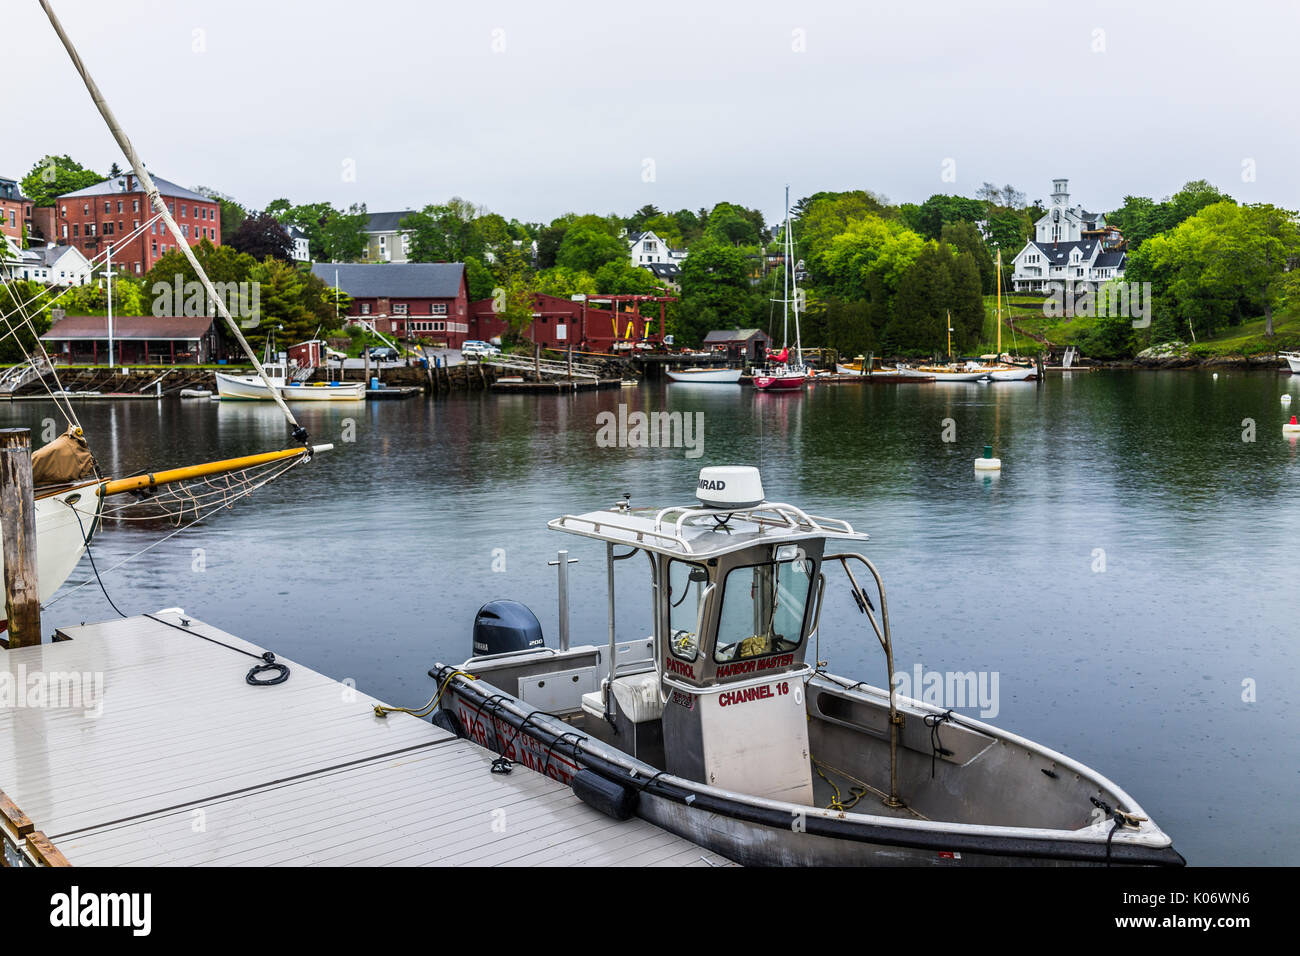 Rockport, USA - June 9, 2017: Harbor Master sign on boat in small Maine village marina - Stock Image